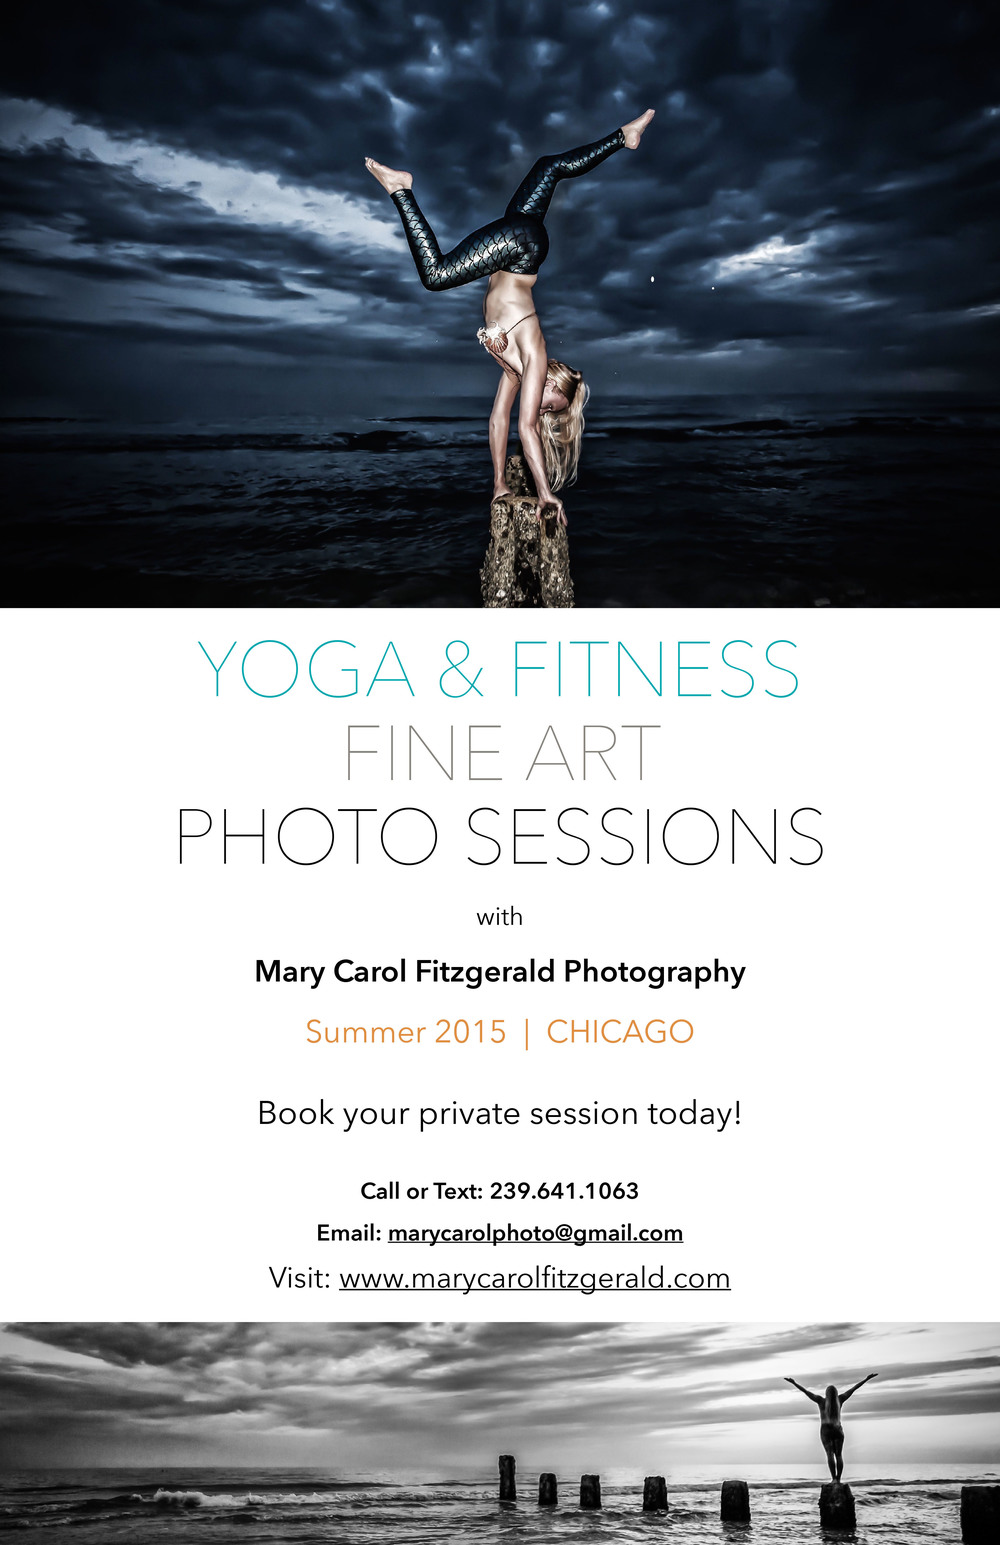 Yoga & Fitness Photo Shoots - Chicago IL Summer 2015